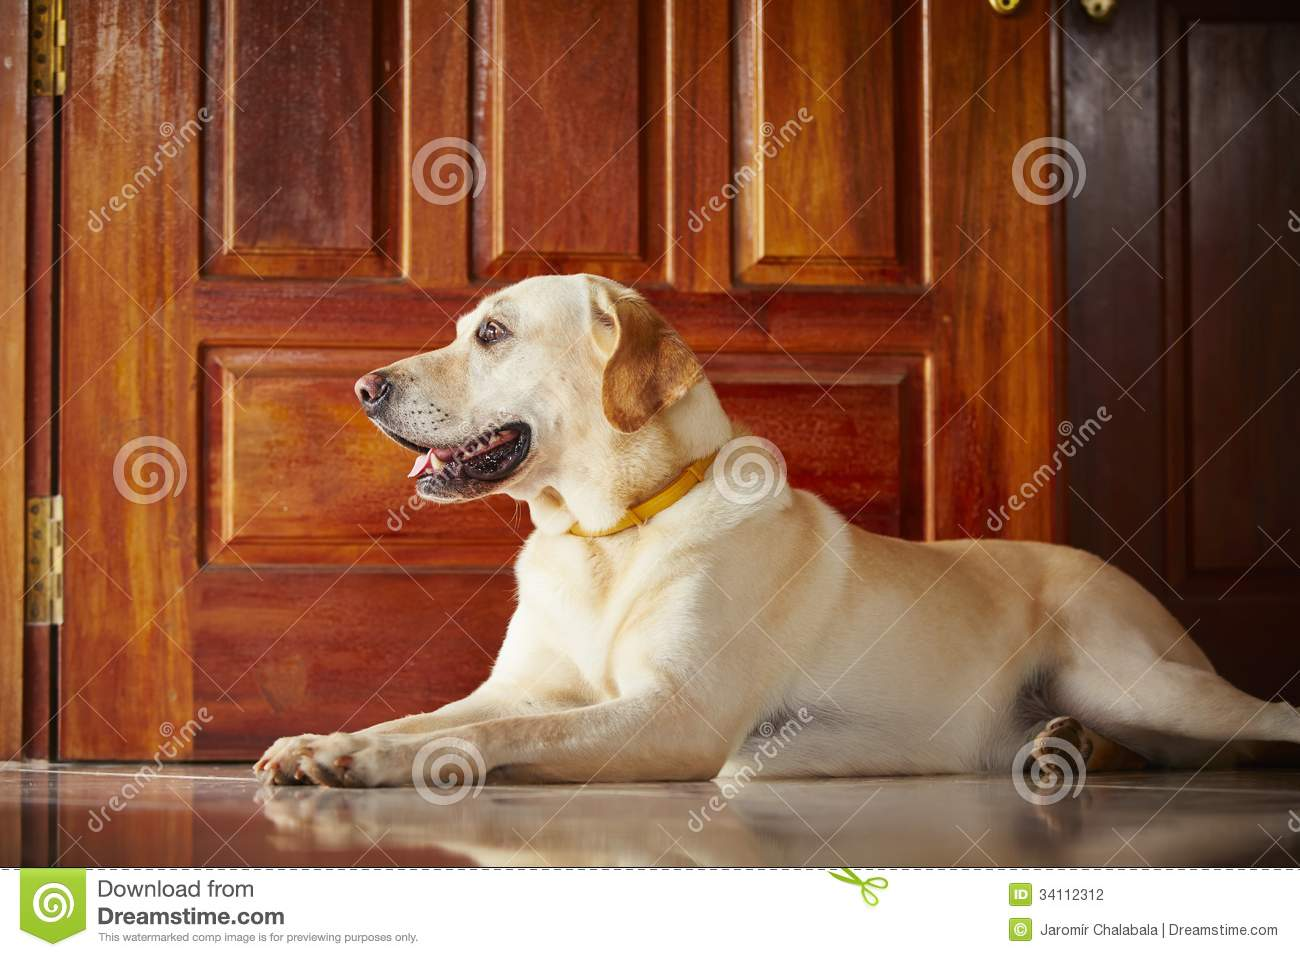 Dog at home stock photography image 34112312 for Dog house for labrador retriever